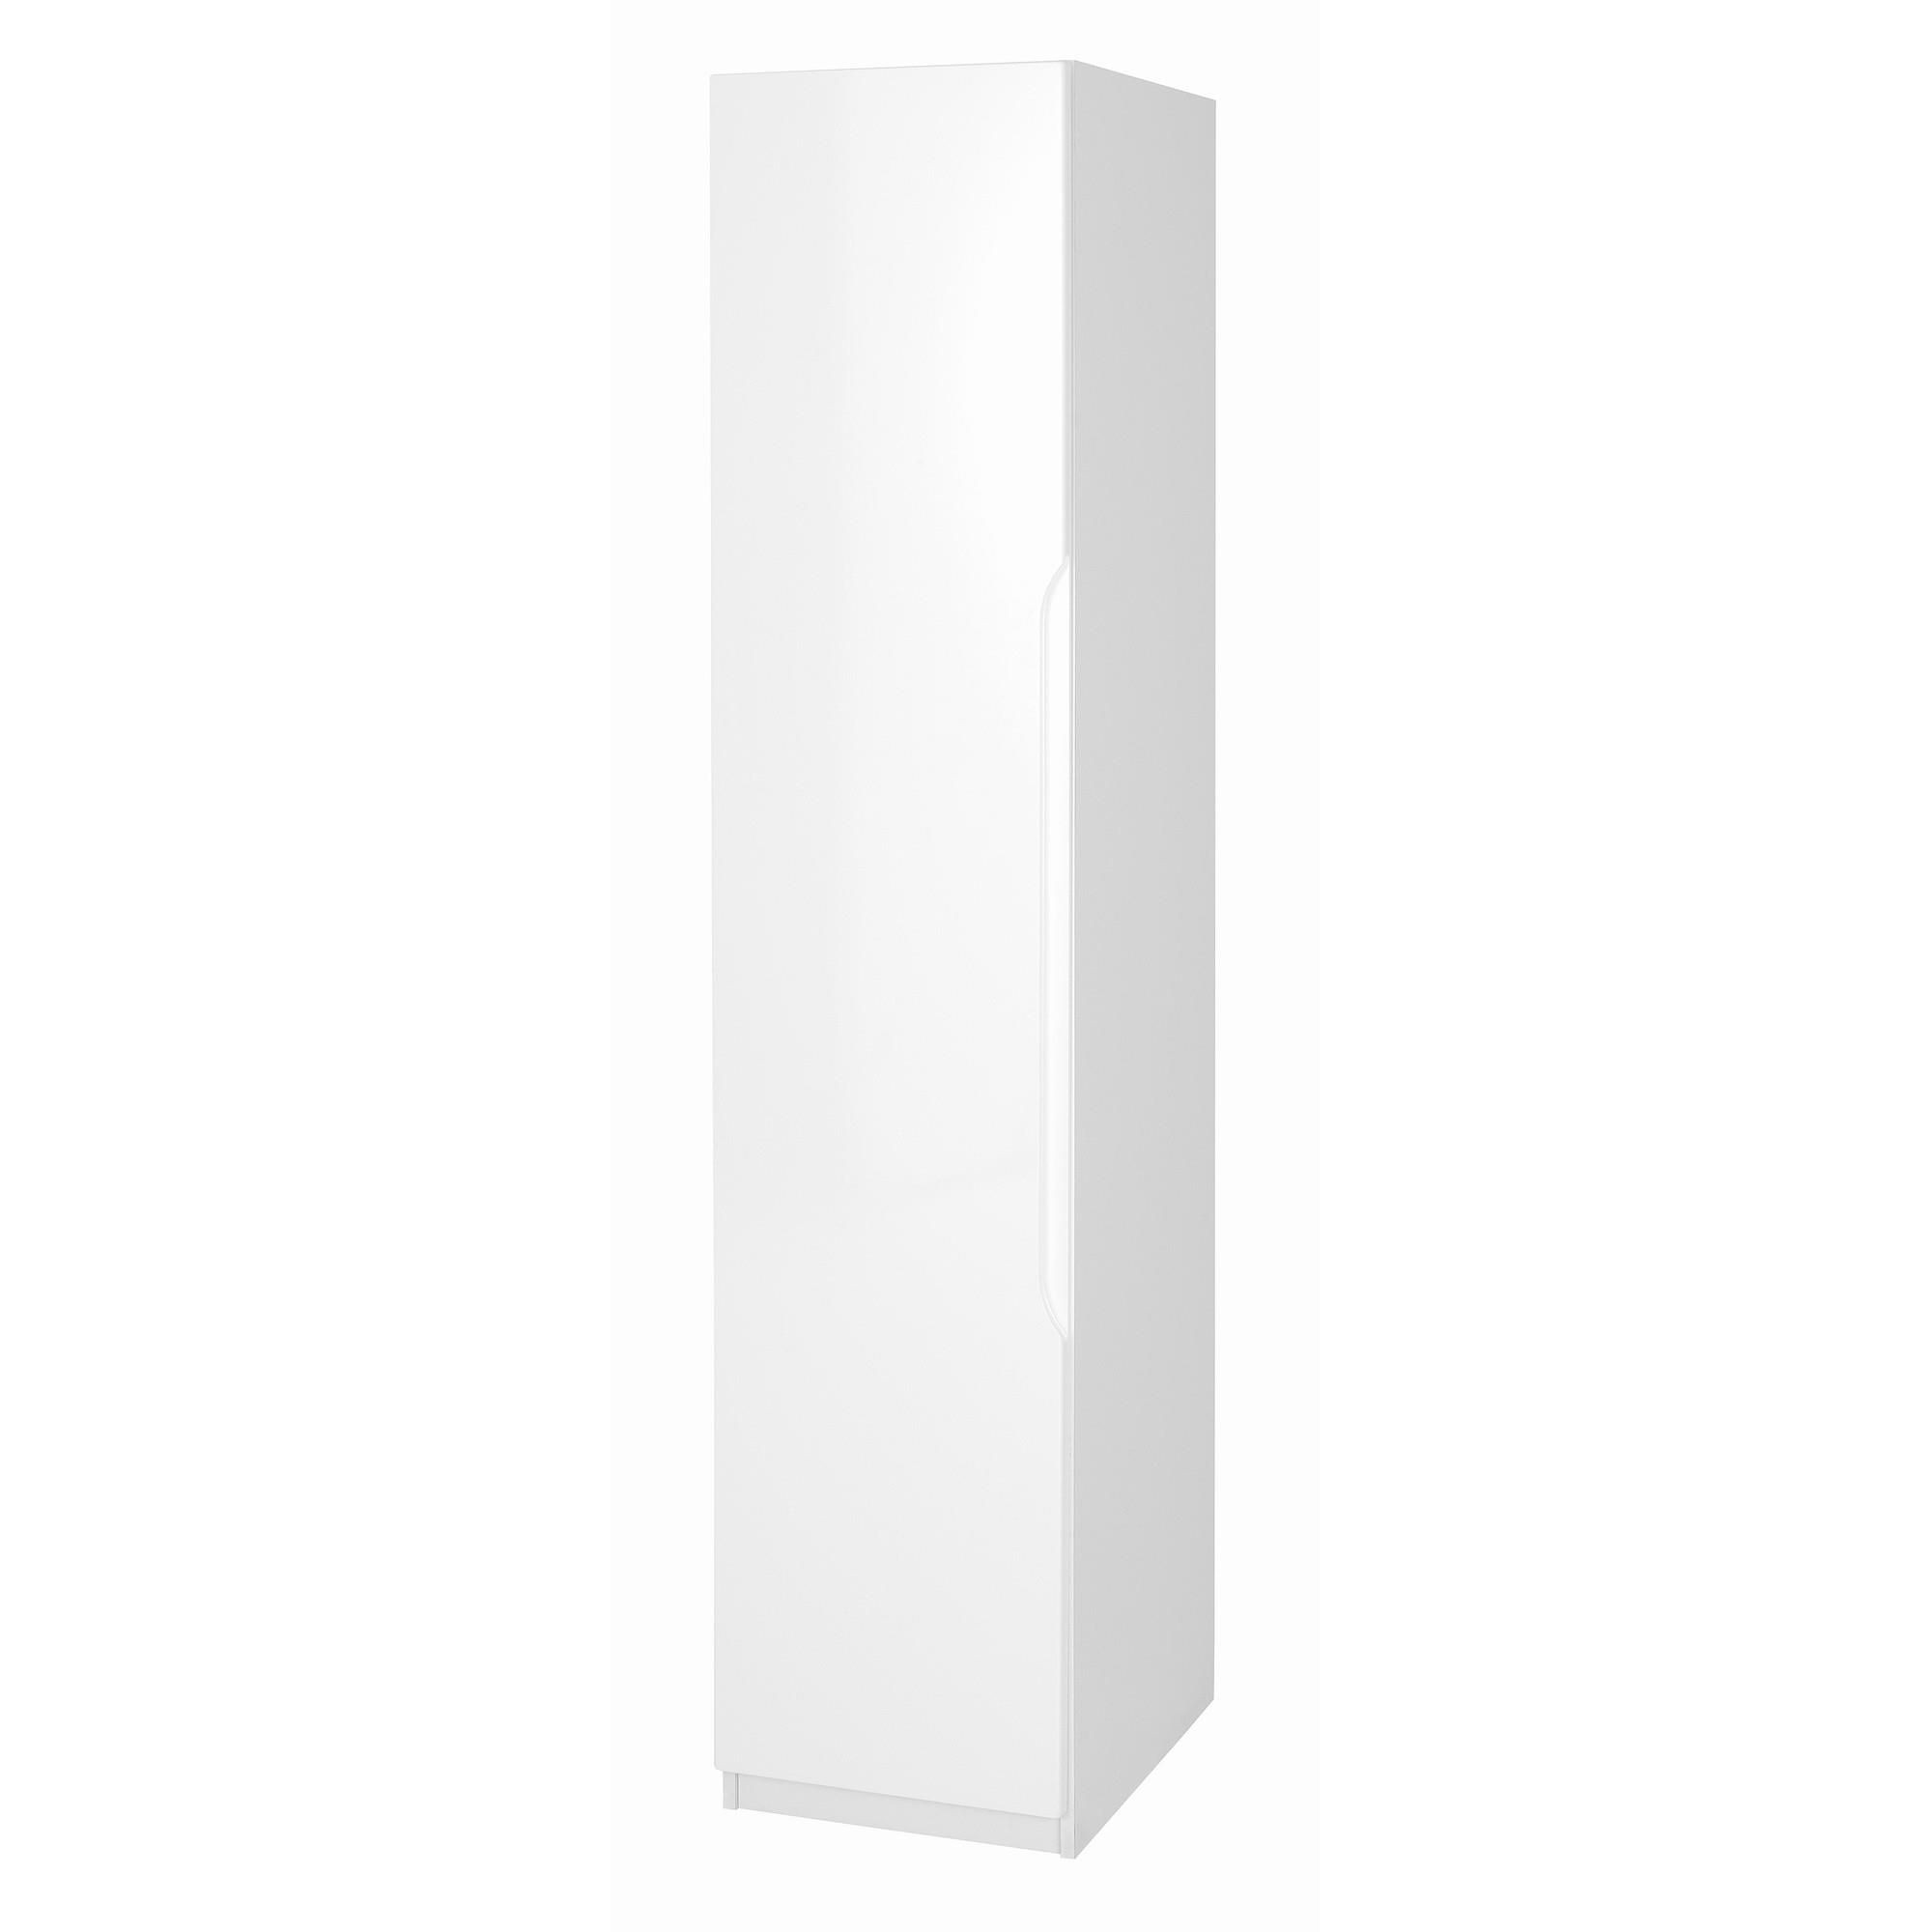 Alto Furniture Visualise Alpine Single Wardrobe in High Gloss White at Tesco Direct